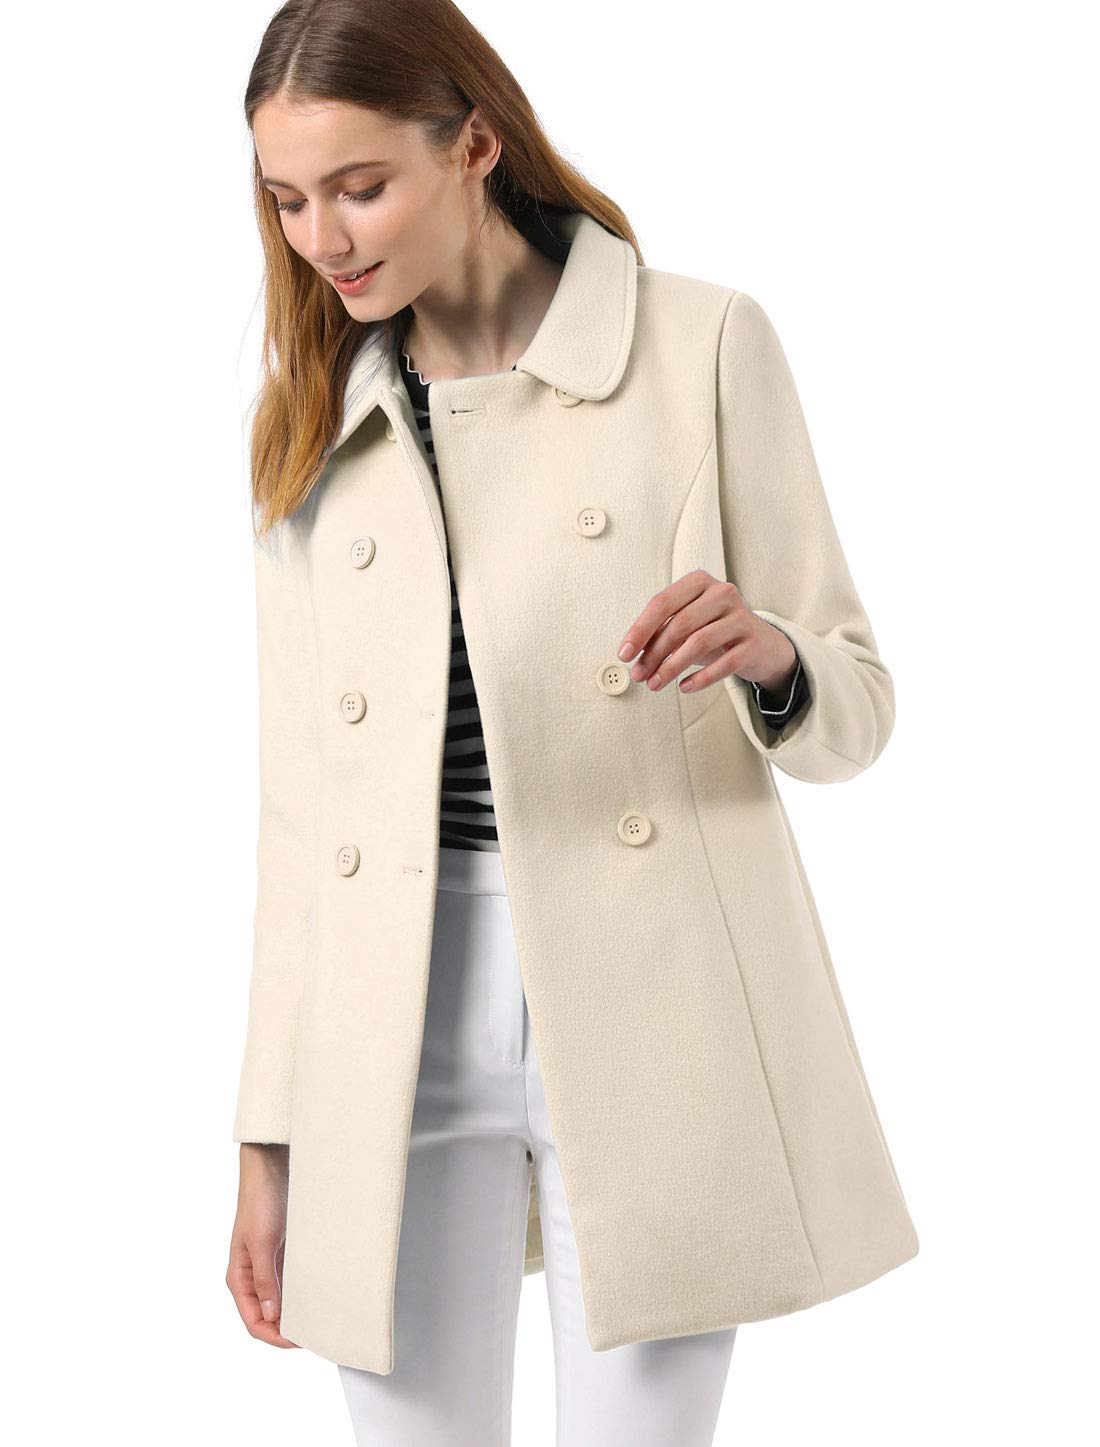 Allegra K Women's Peter Pan Collar Double Breasted Winter Long Trench Pea Coat M Cream White by Allegra K